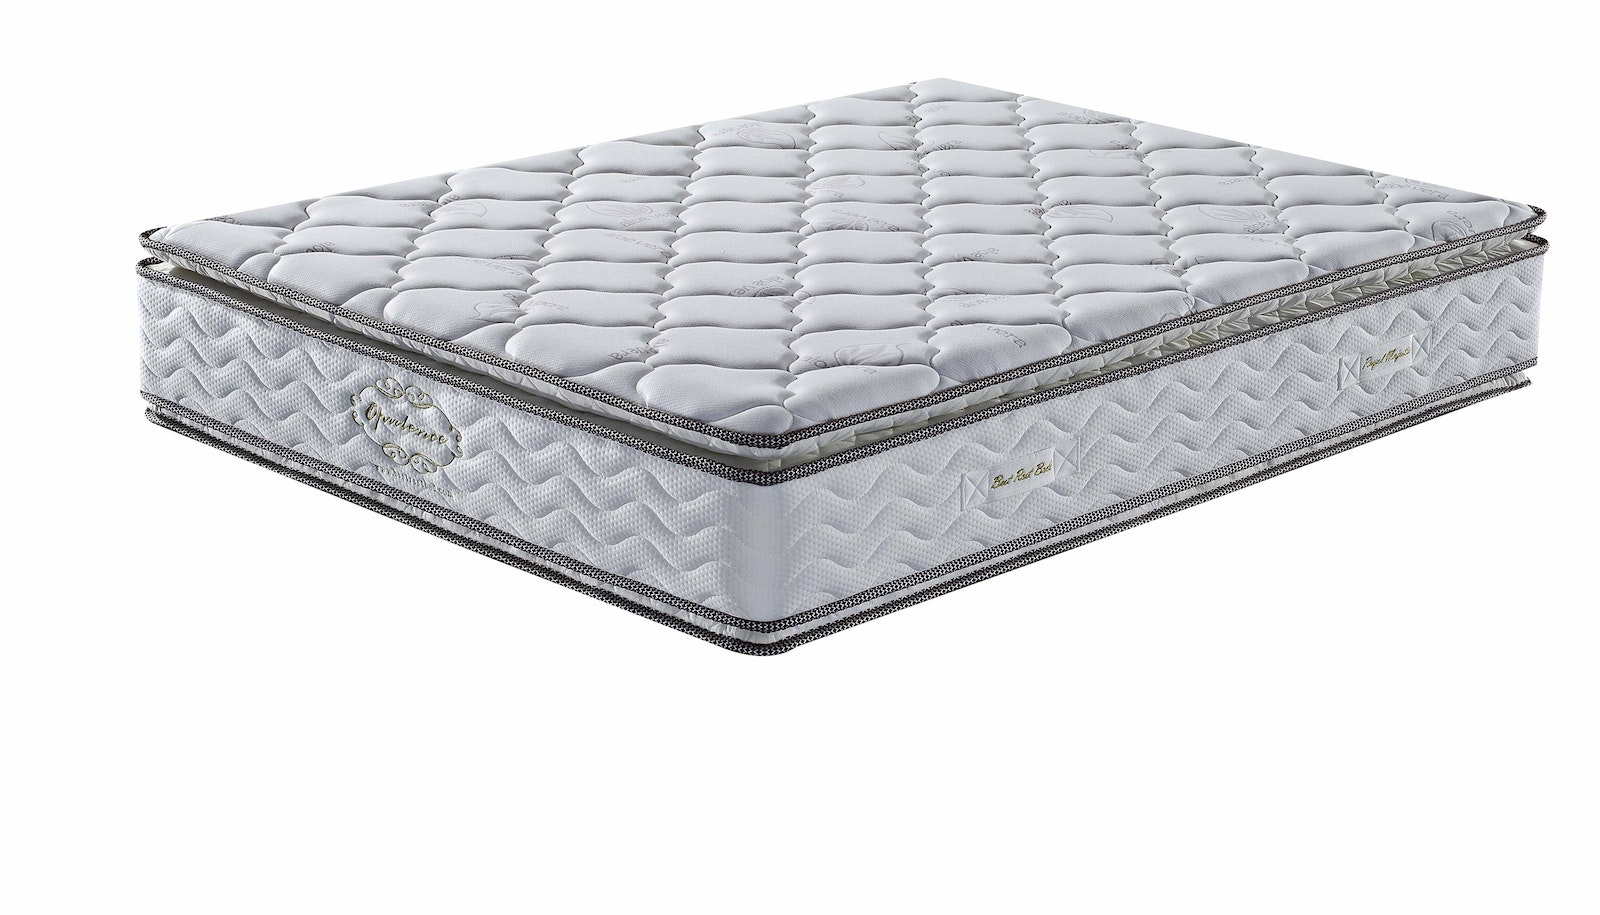 Opulence Mattress Queen Pillow Top Mattresses For Sale In Beverley